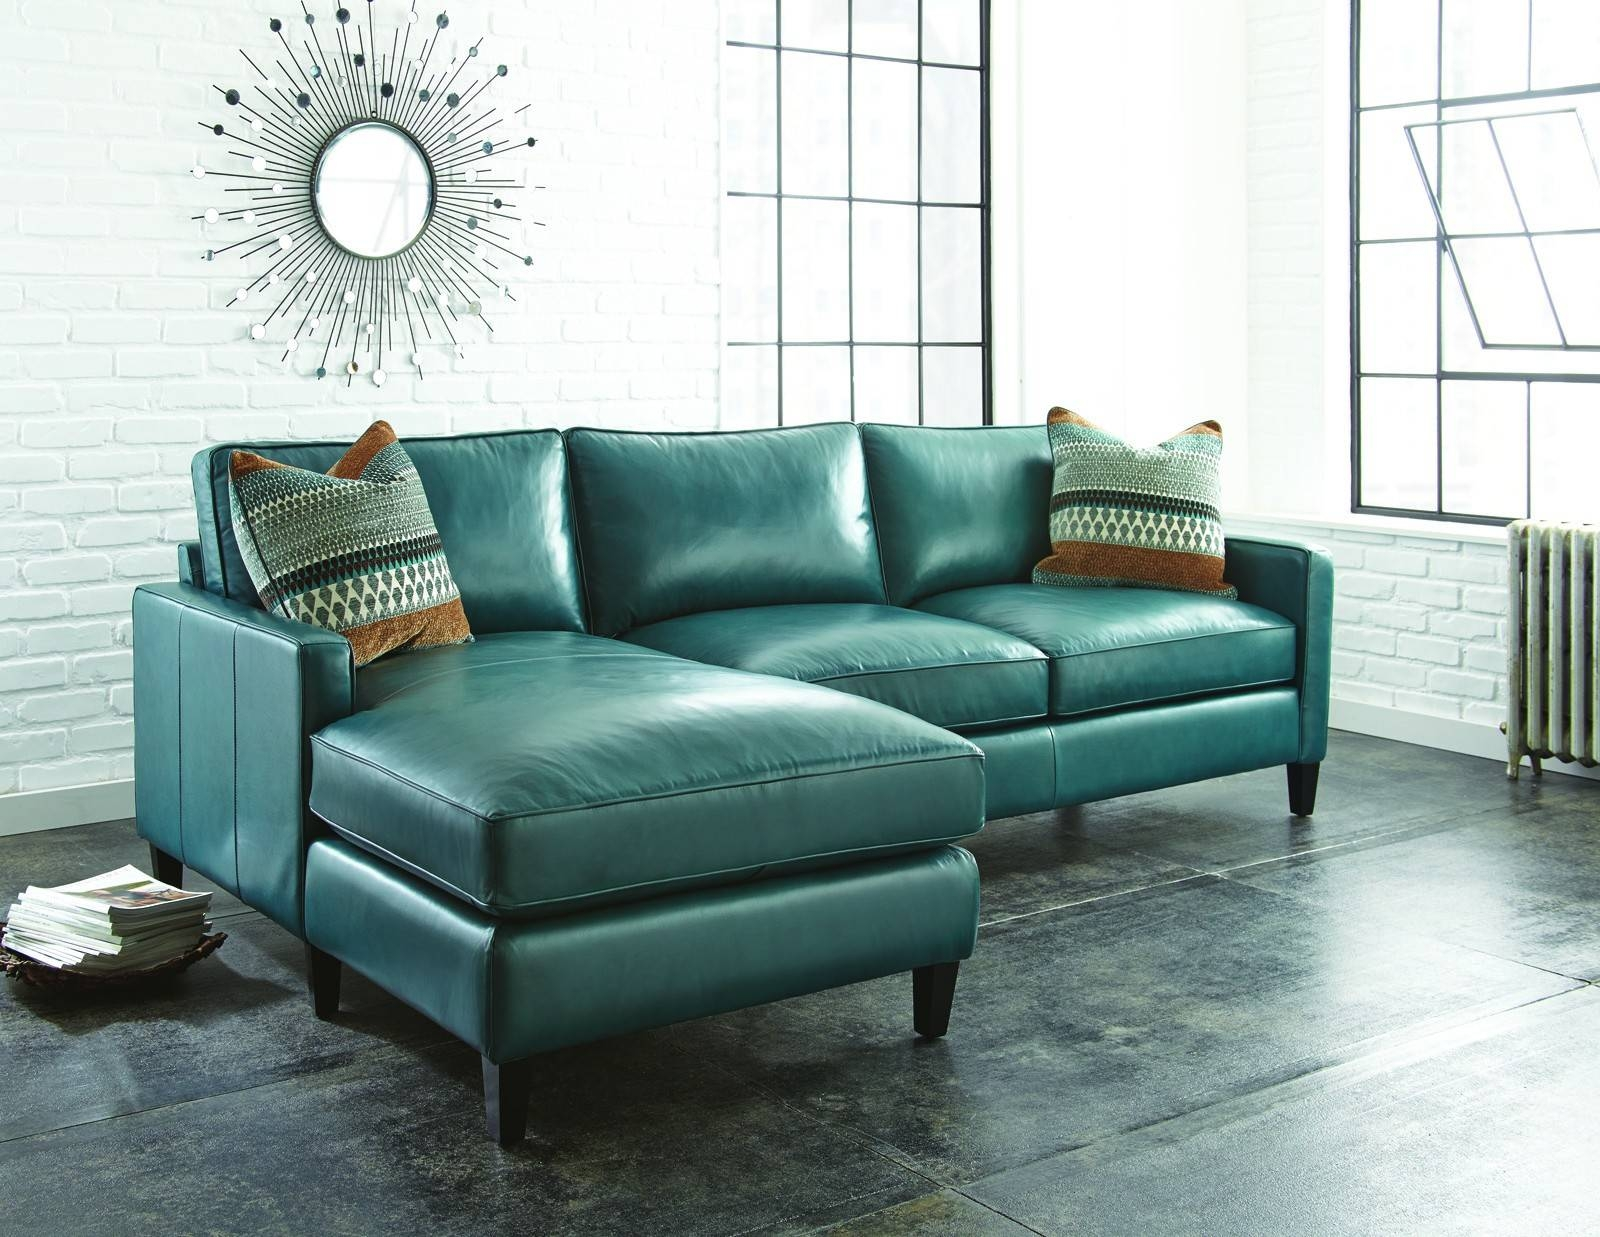 Living Room: Using Elegant Cindy Crawford Sectional Sofa For intended for Cindy Crawford Sectional Leather Sofas (Image 9 of 15)